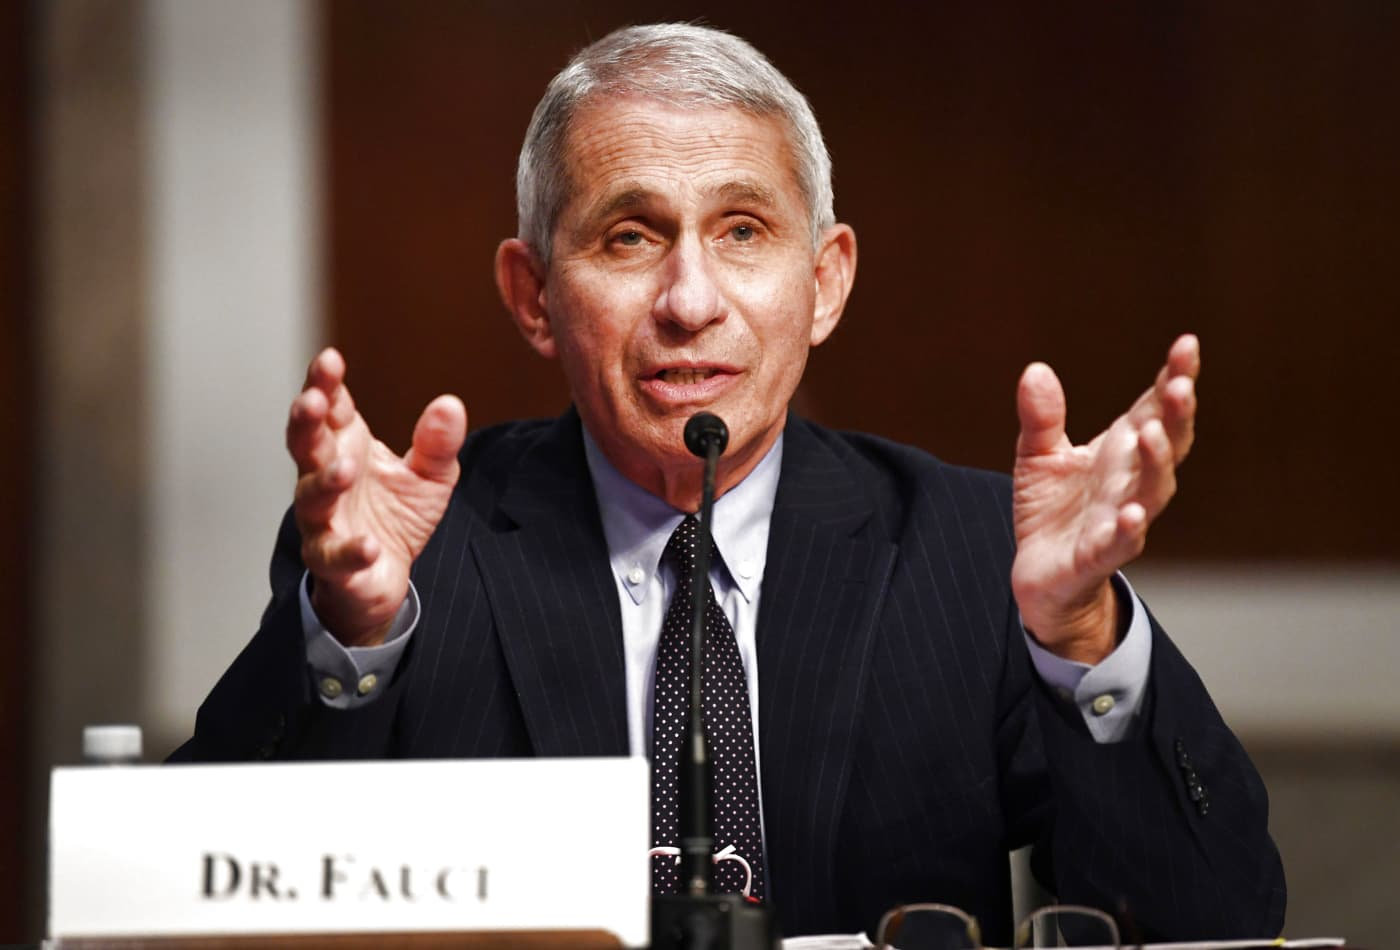 Dr. Anthony Fauci says new virus in China has traits of 2009 swine flu and 1918 pandemic flu